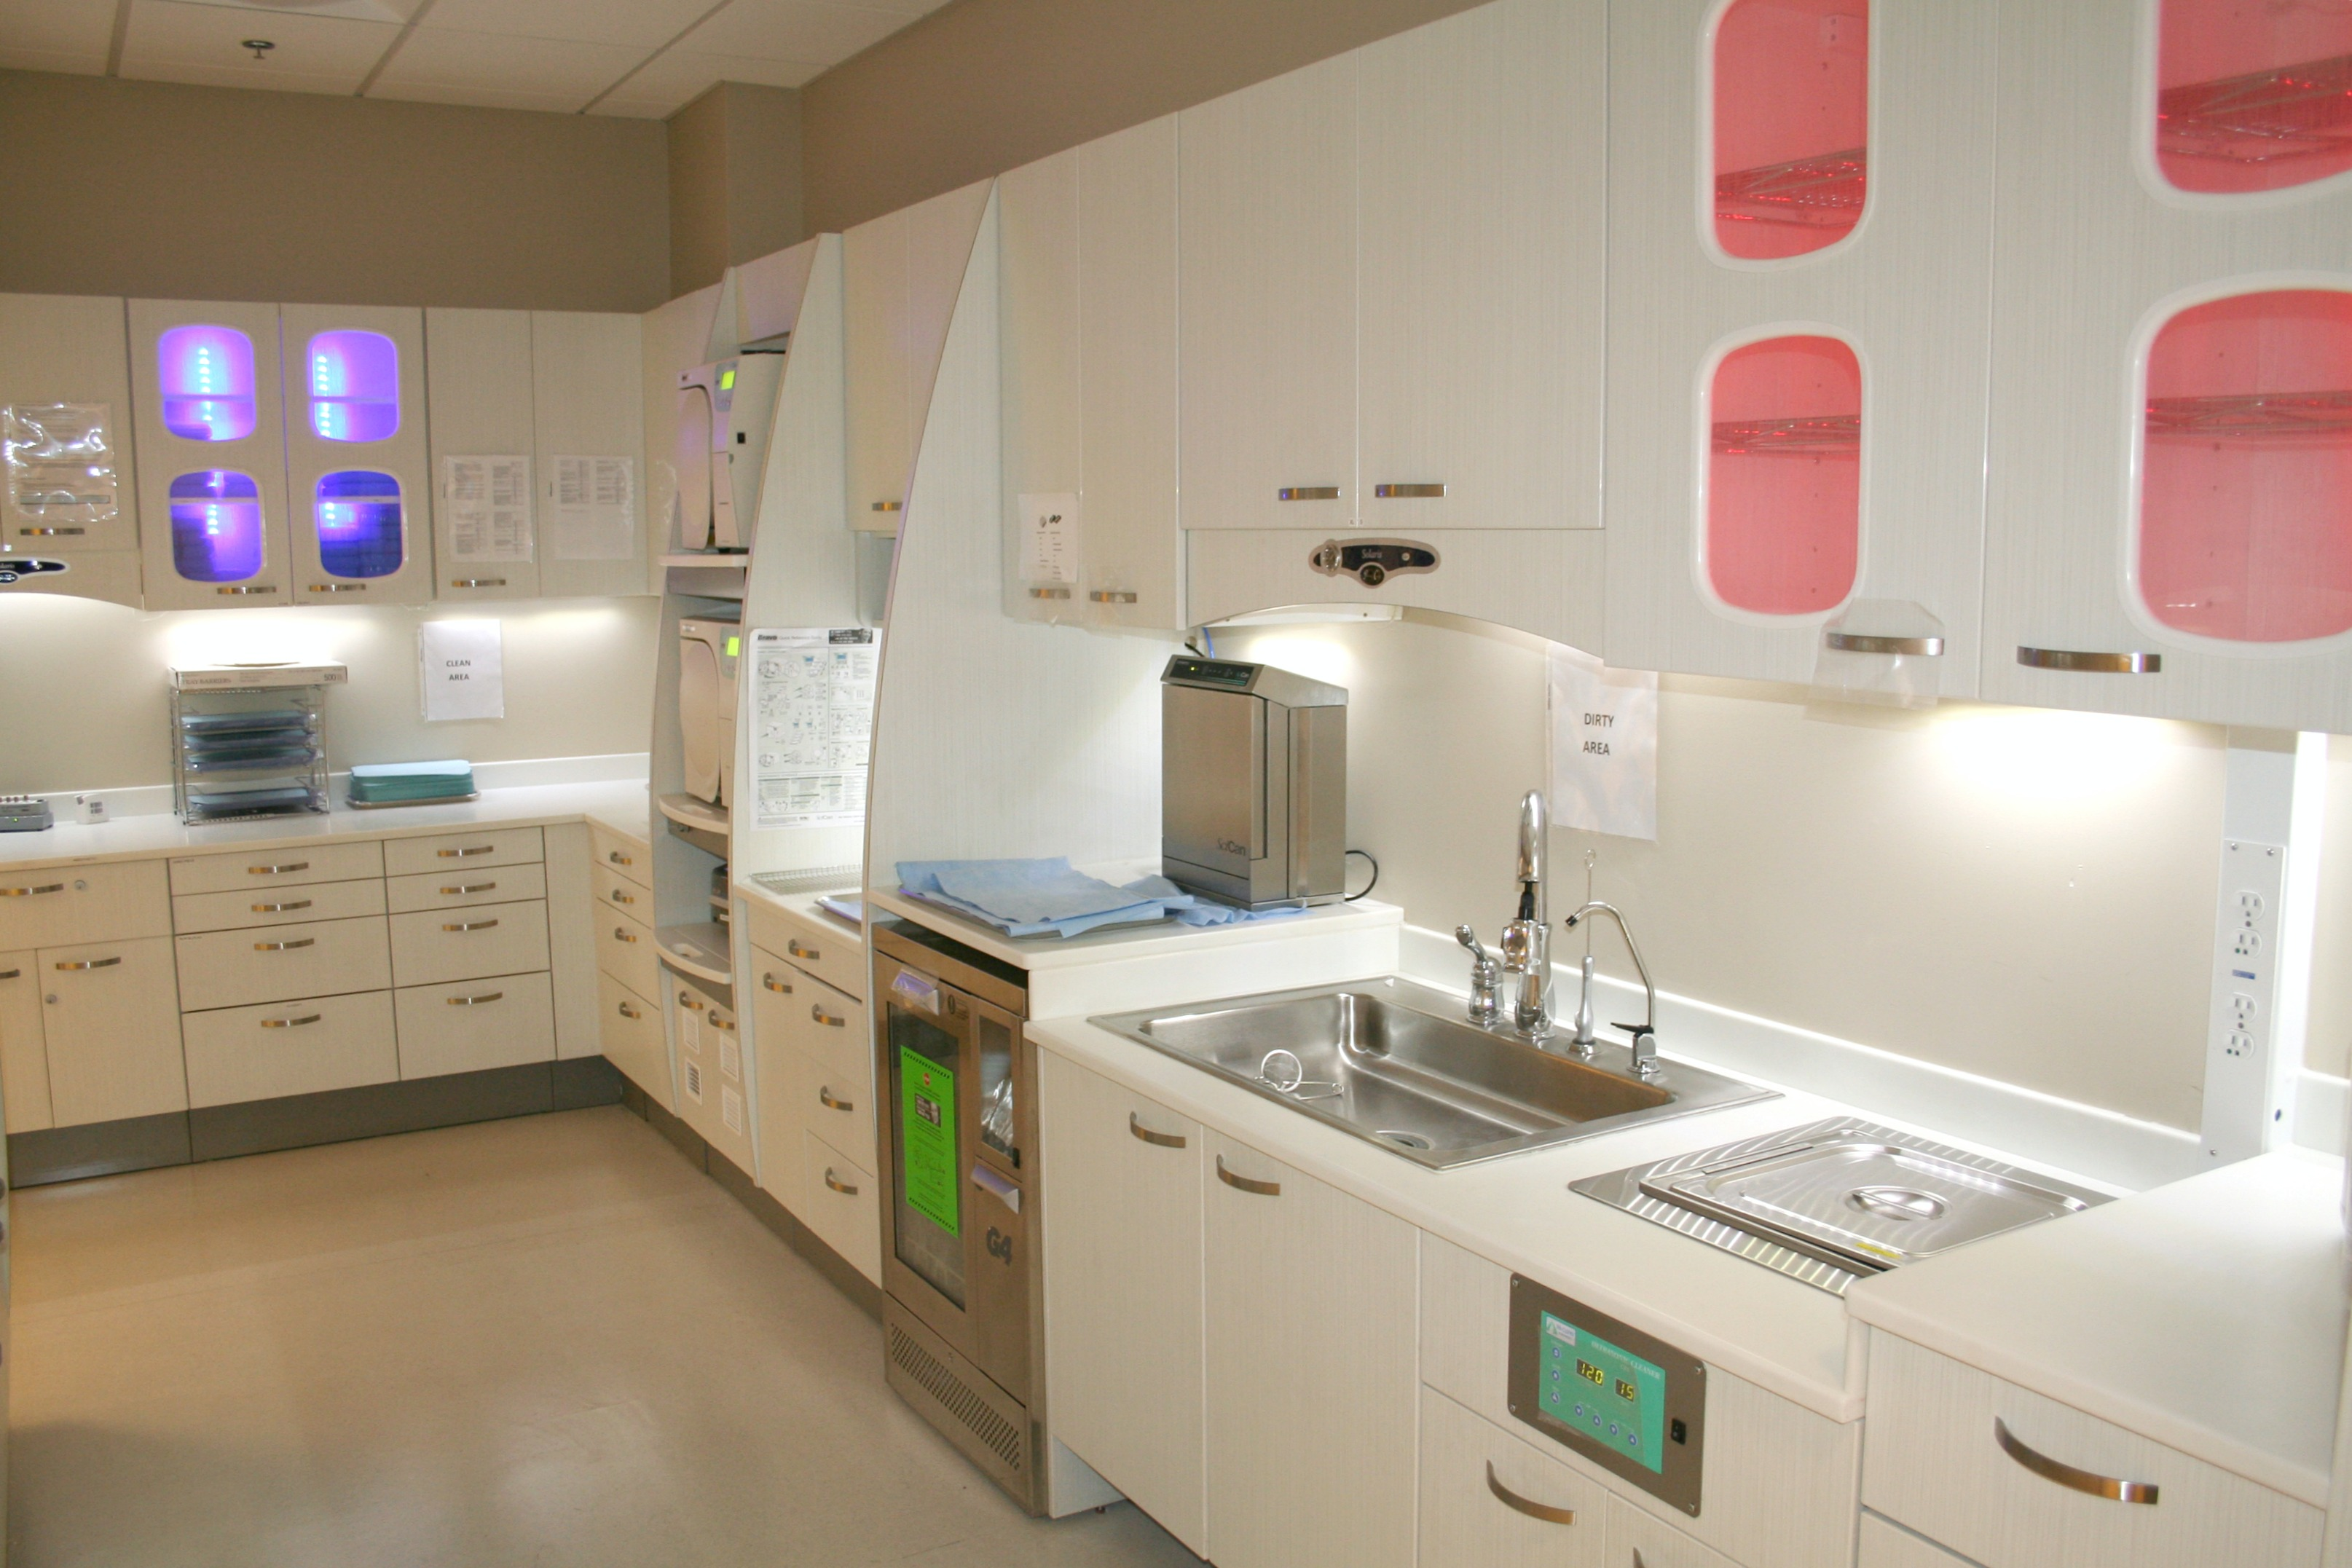 General Contractor Builds Los Angeles Medical Dental lab Facility Construction